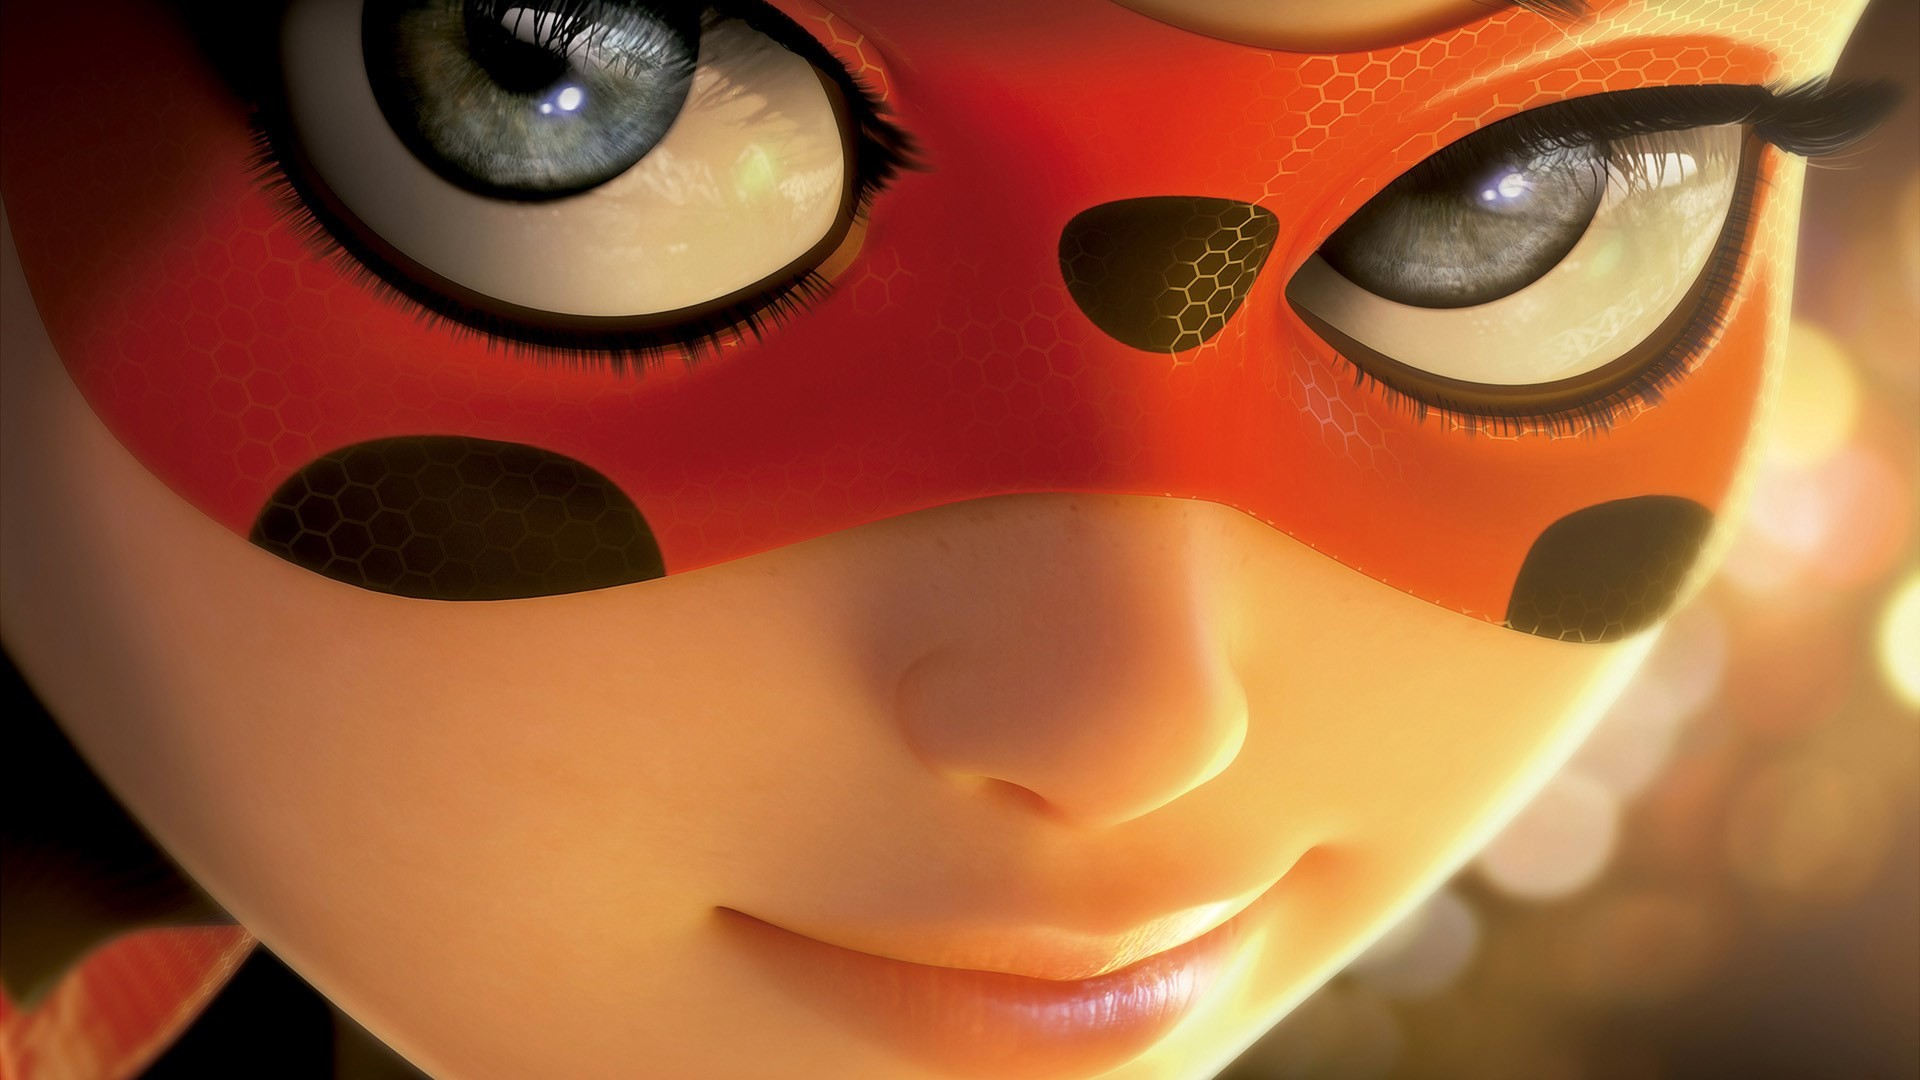 2017-03-26 – HQ Definition Wallpaper Desktop miraculous tales of ladybug  and cat